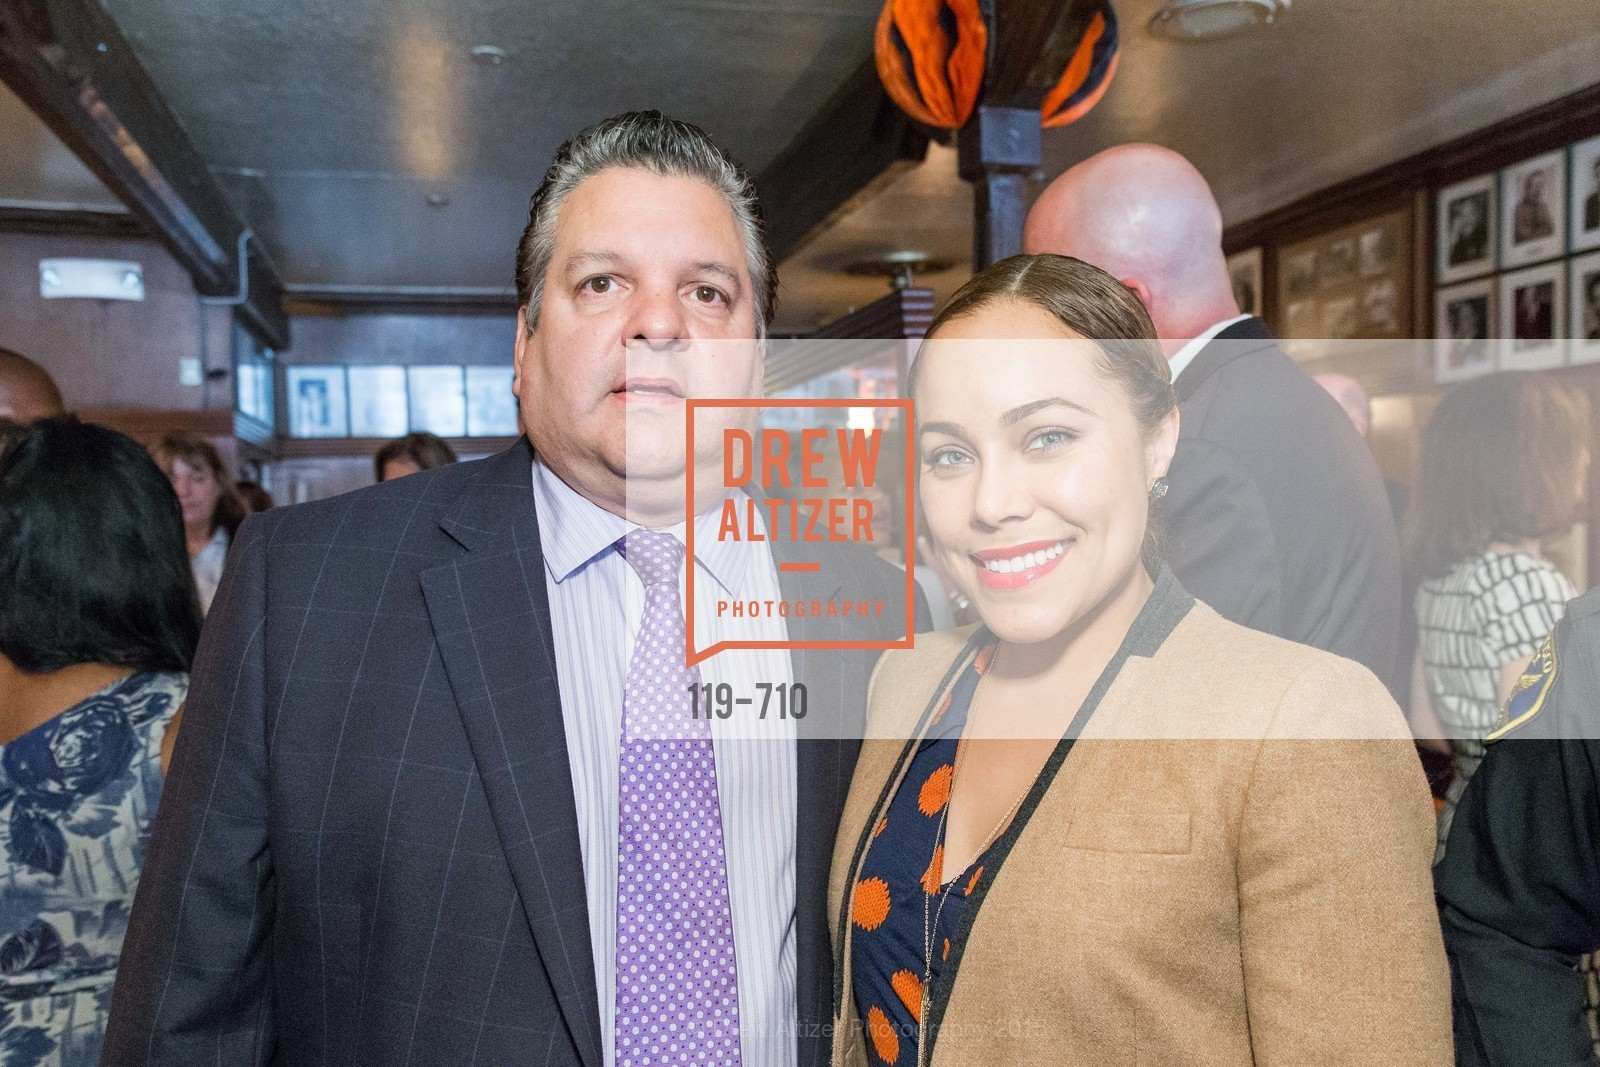 John Konstin, Marisa Rodriguez, 3-RING LUNCH CELEBRATION Honoring RENEL BROOKS-MOON, US, June 8th, 2015,Drew Altizer, Drew Altizer Photography, full-service agency, private events, San Francisco photographer, photographer california